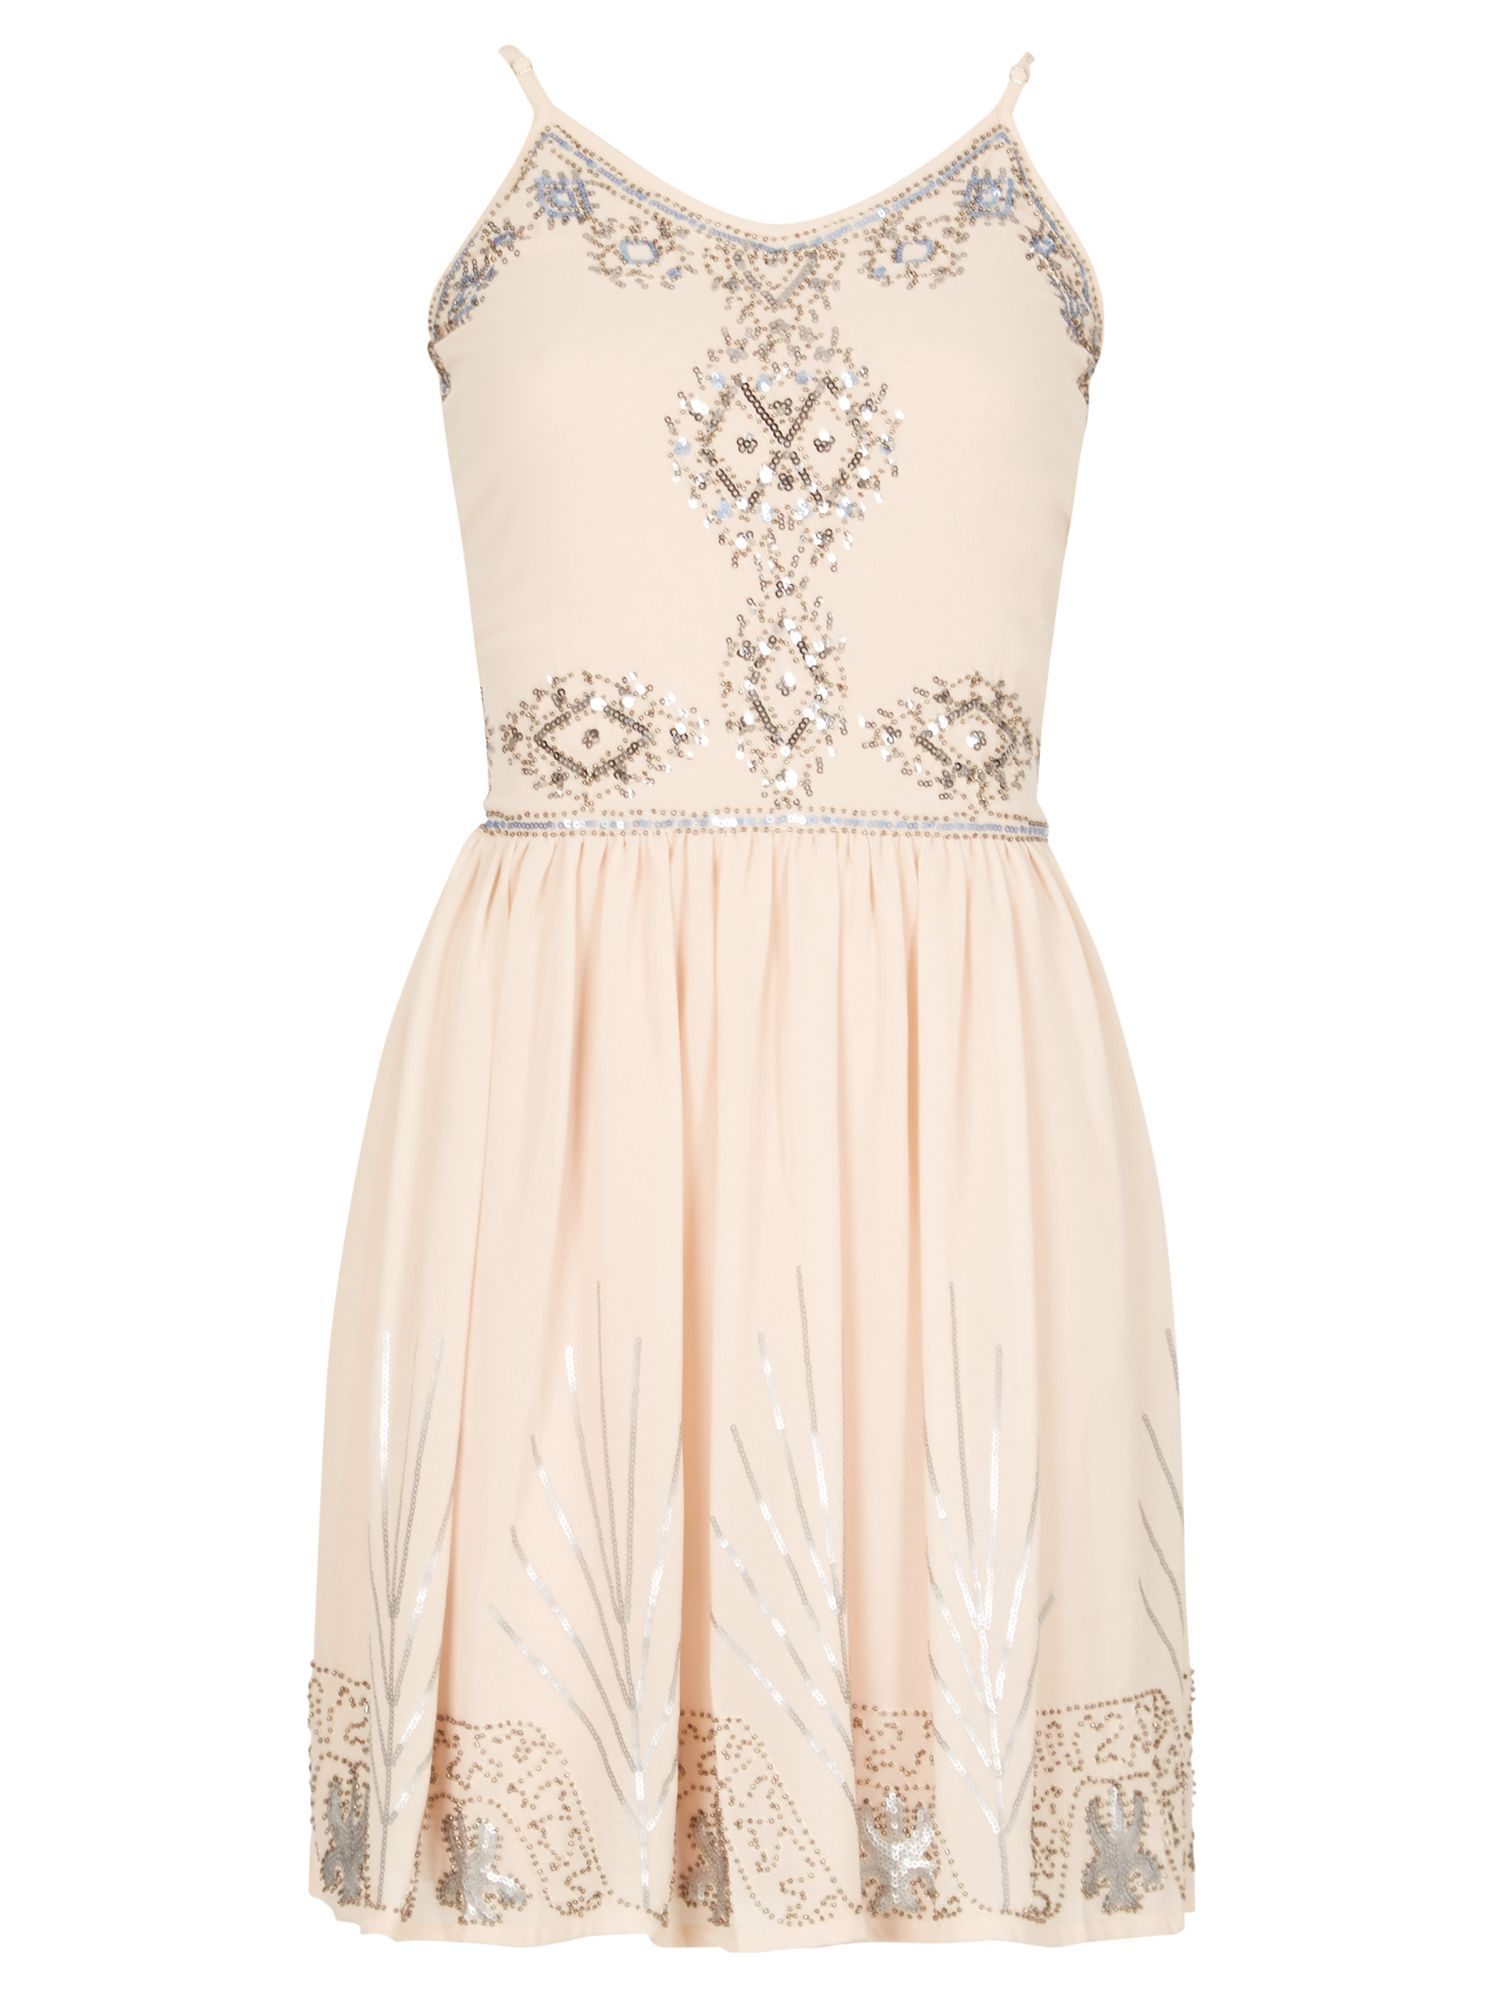 Izabel London Sequin Embellished Dress, White